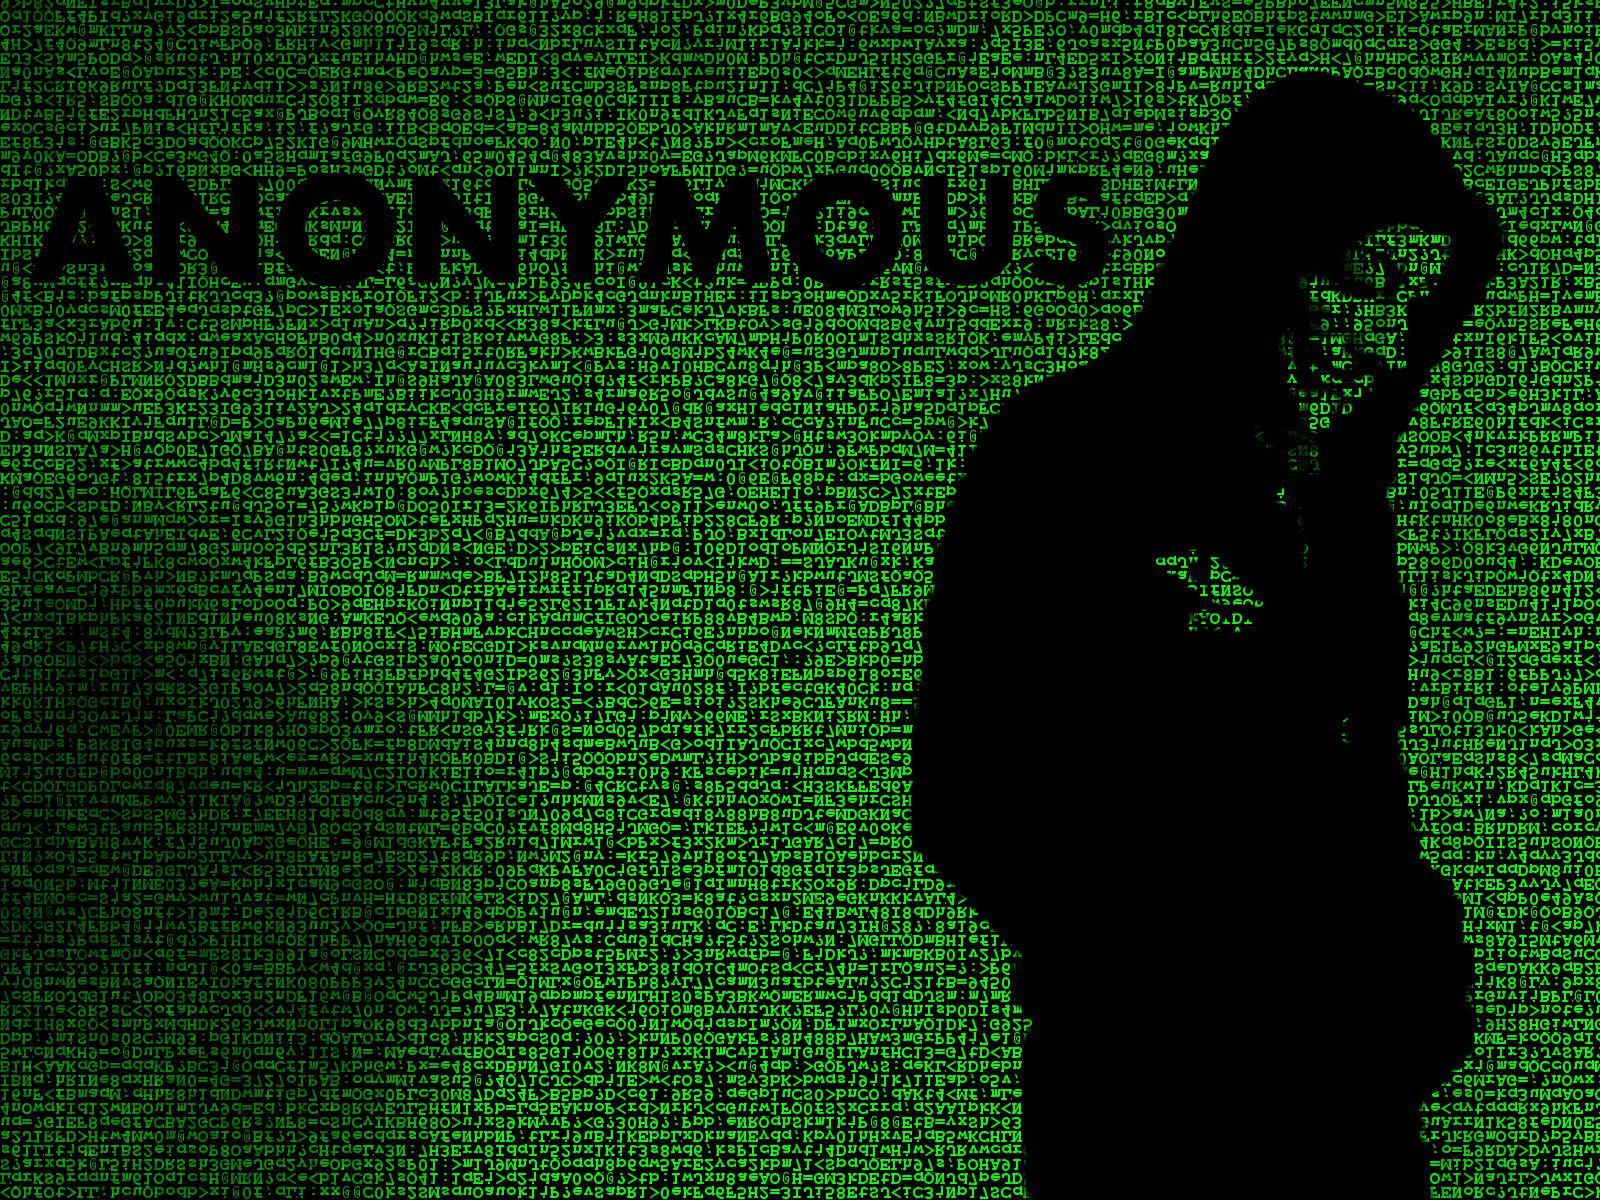 Cool Photo Anonymous Hacker Wallpaper For Desktop - Wallpaper OS